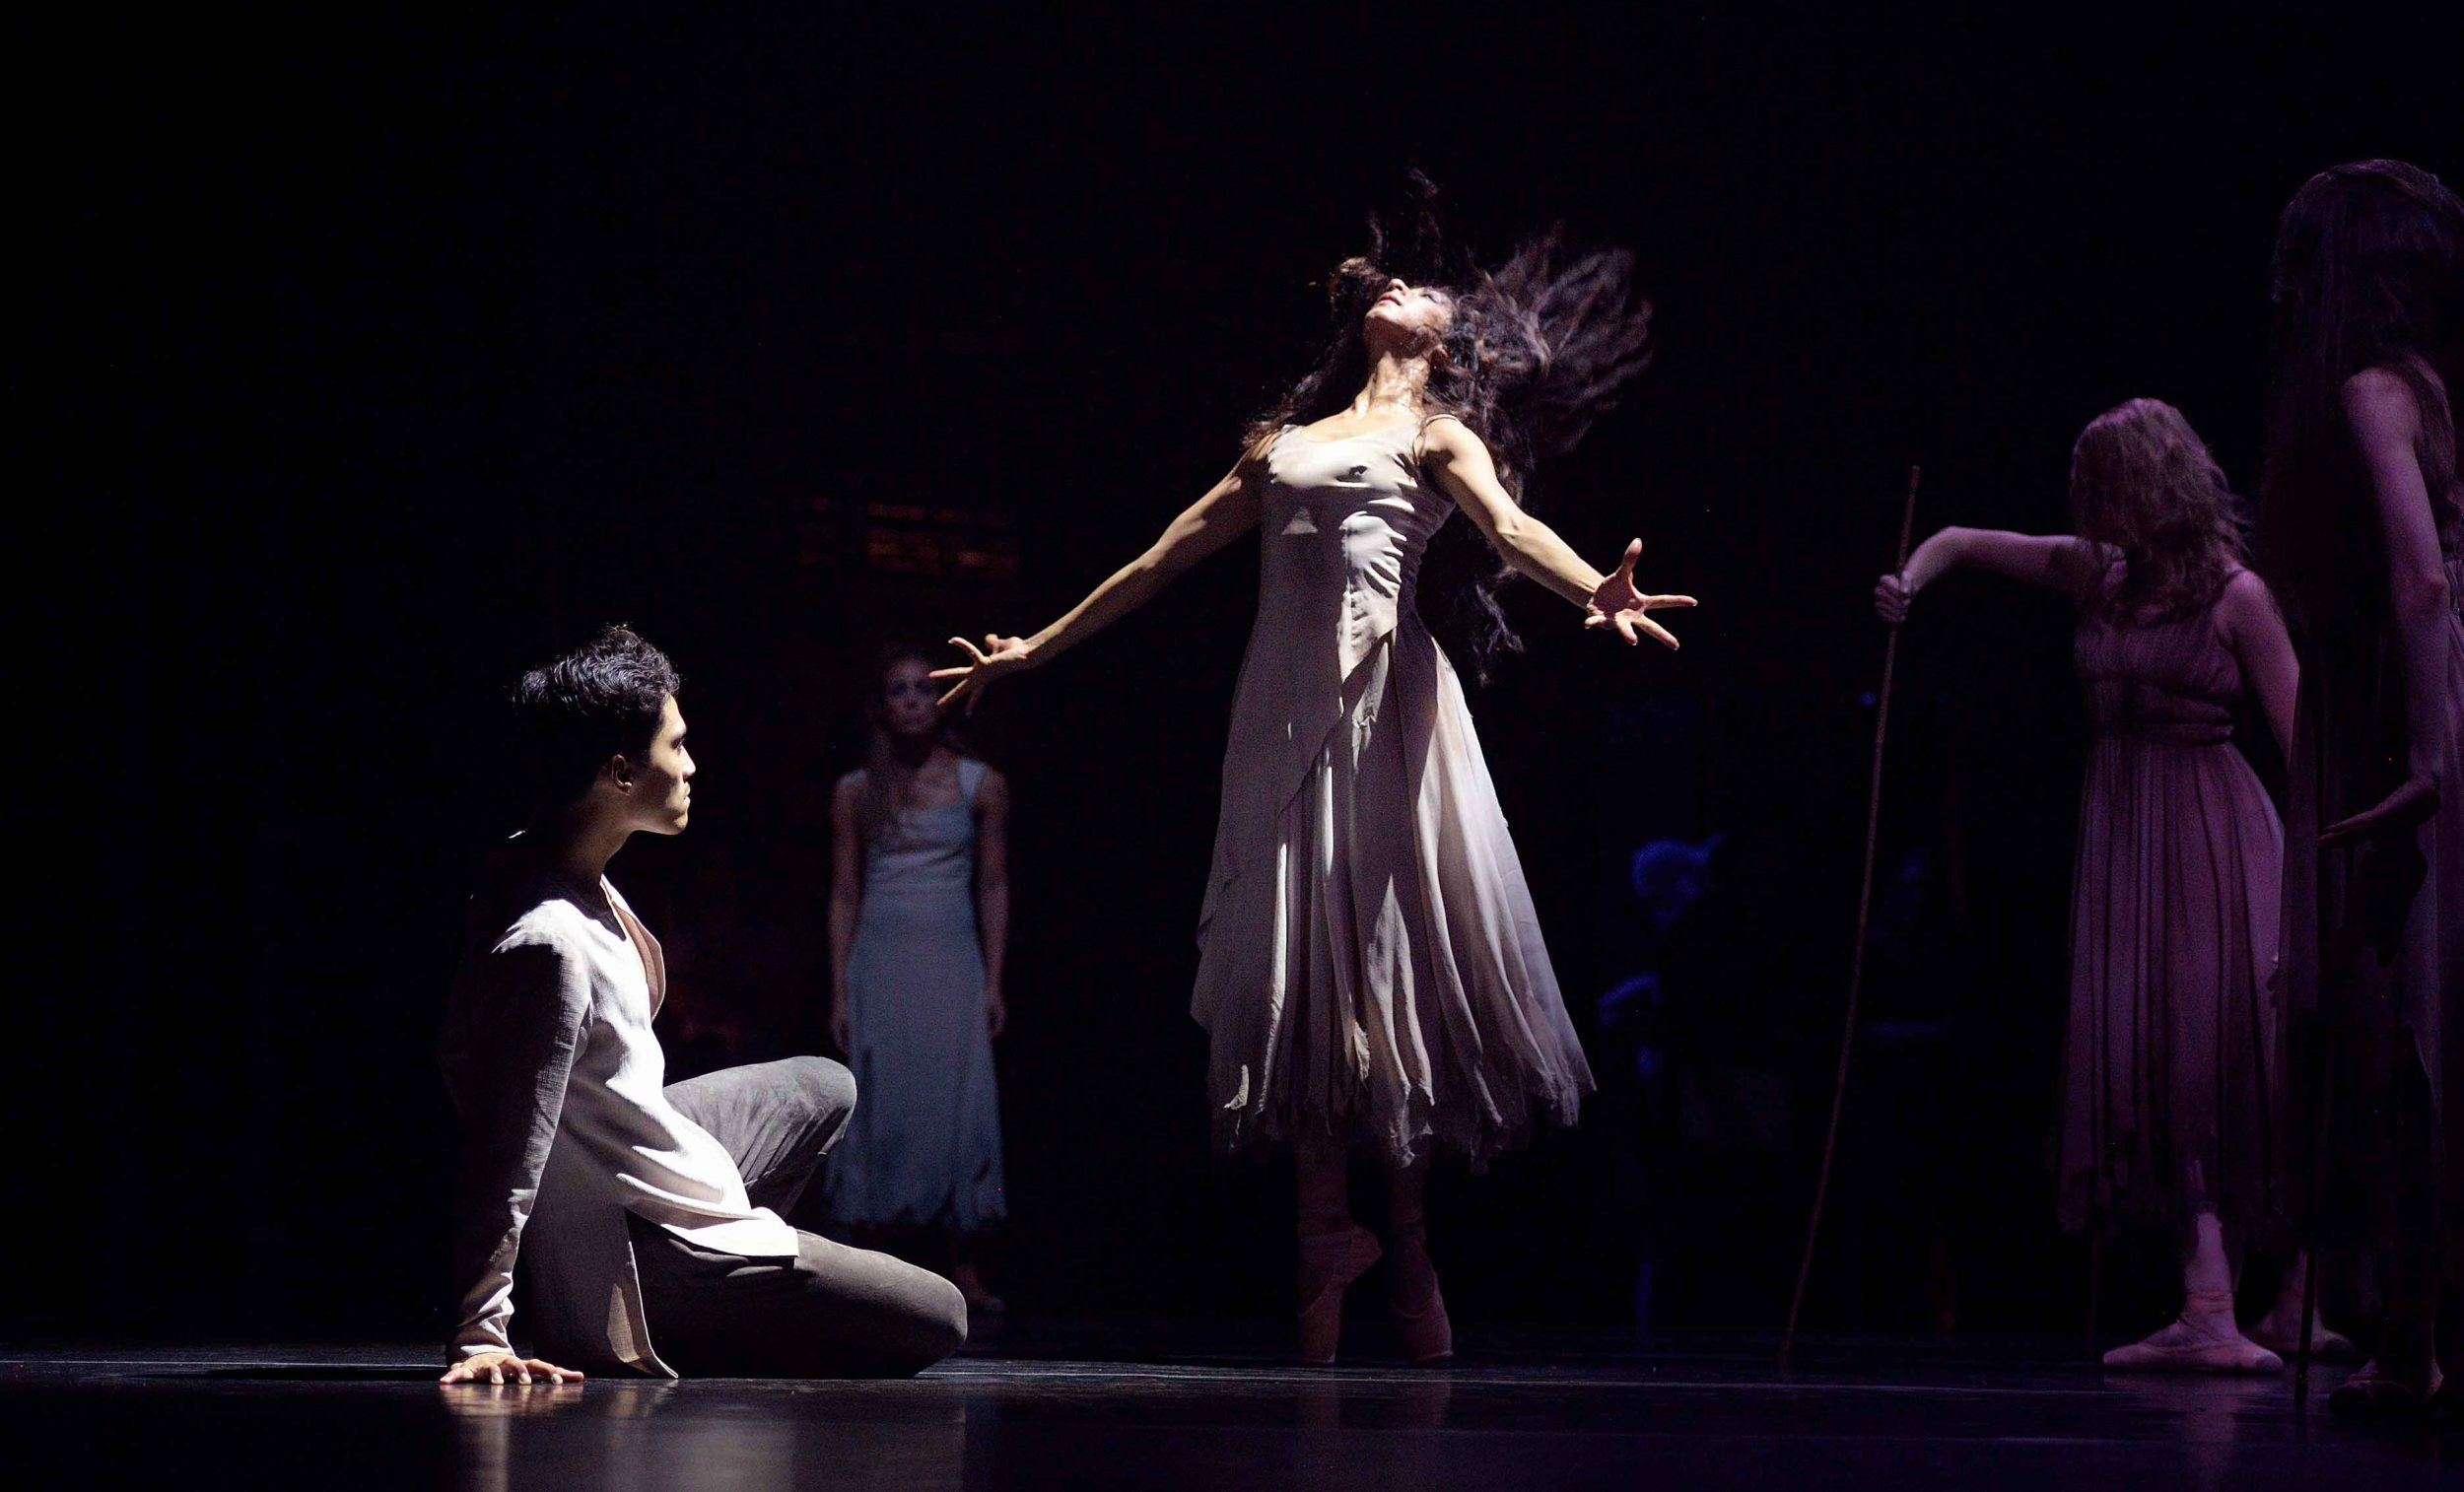 Sarah-Kundi-and-Jeffrey-Cirio-in-Akram-Khan's-Giselle-©-Laurent-Liotardo